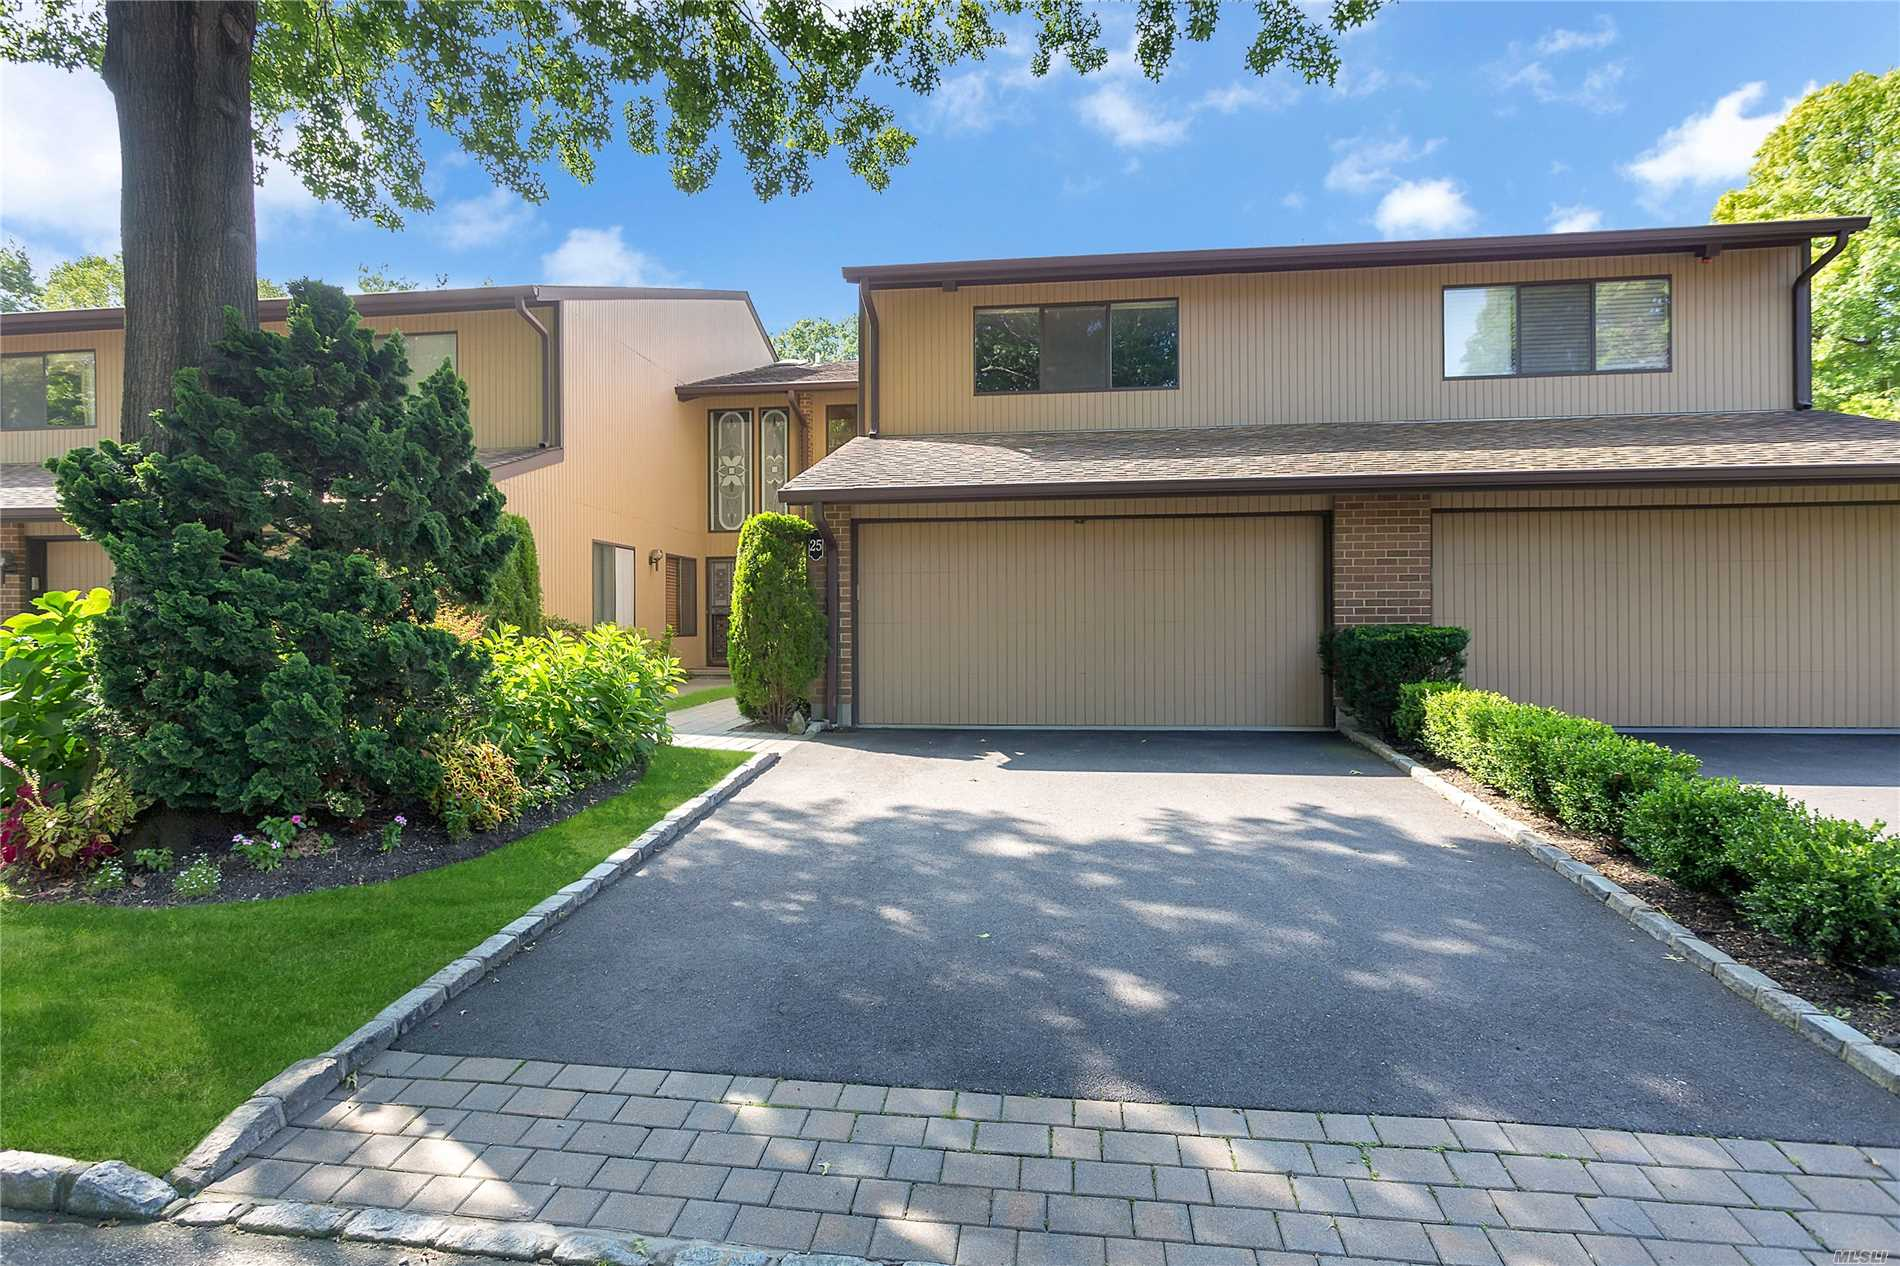 Roslyn. Incredible North Hills 'Ashwood' Townhouse In The Imperial Gardens. Meticulously Maintained Featuring 3 Bedrooms And 2.5 Baths. Enter Through 2 Story Entry Foyer To The Stunning Eat In Kitchen With Breakfast Area, Living Room/Dining Room Combination Leading To The Back Deck, Family Room With Fireplace, Master Bedroom Suite With Sky Lit Full Bathroom. Community Includes Tennis Court And Pool. Must See!!